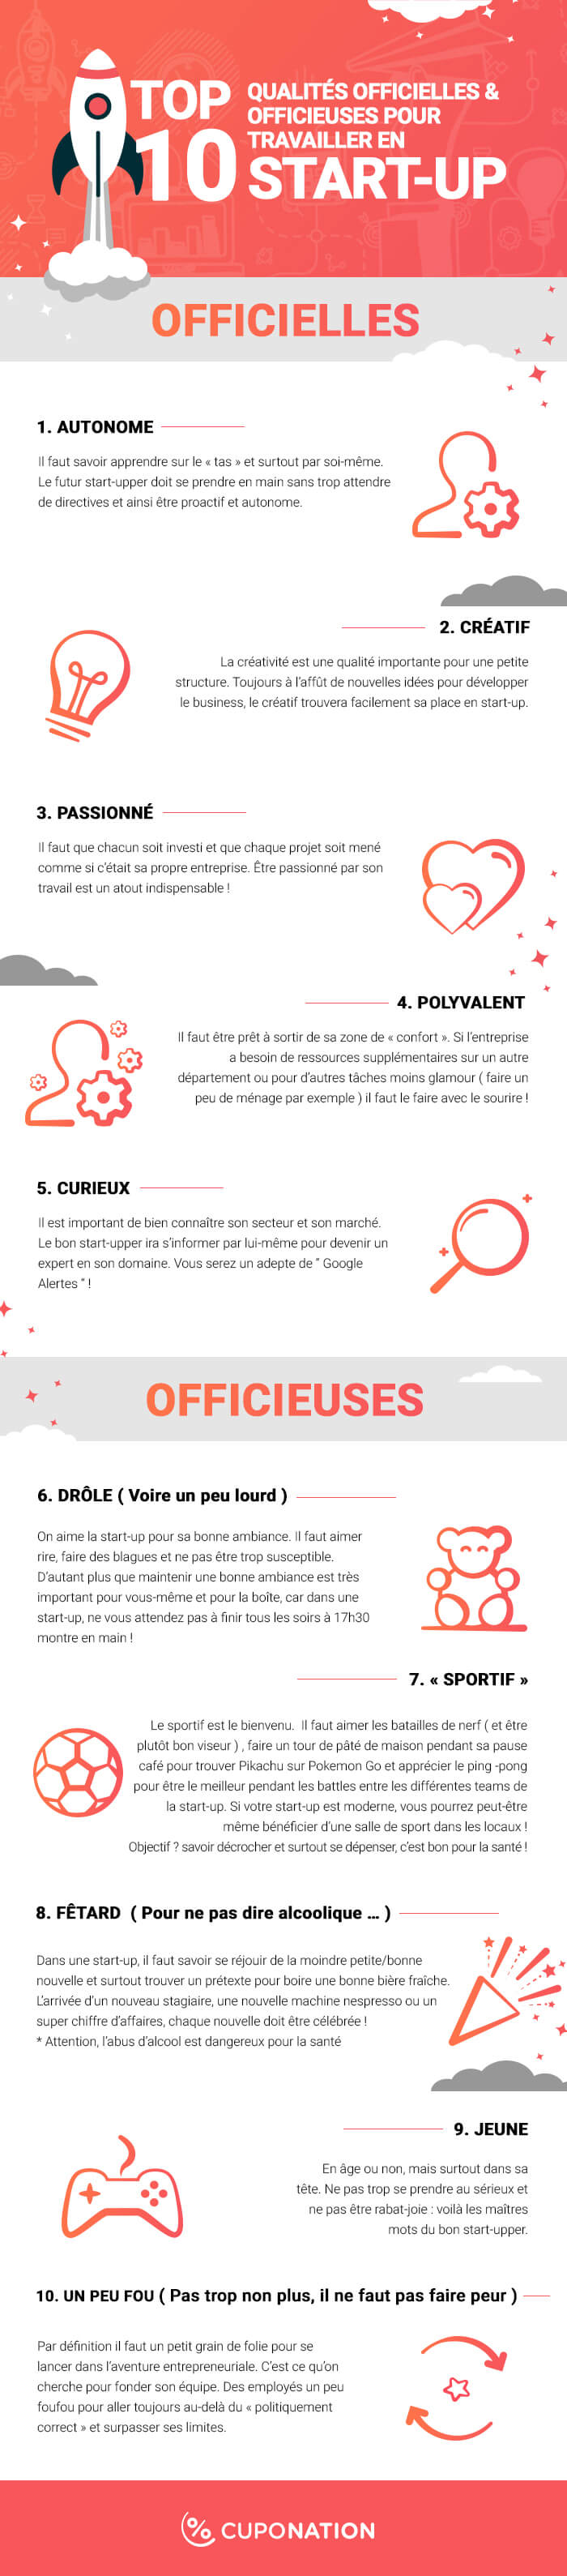 infographie startup cuponation